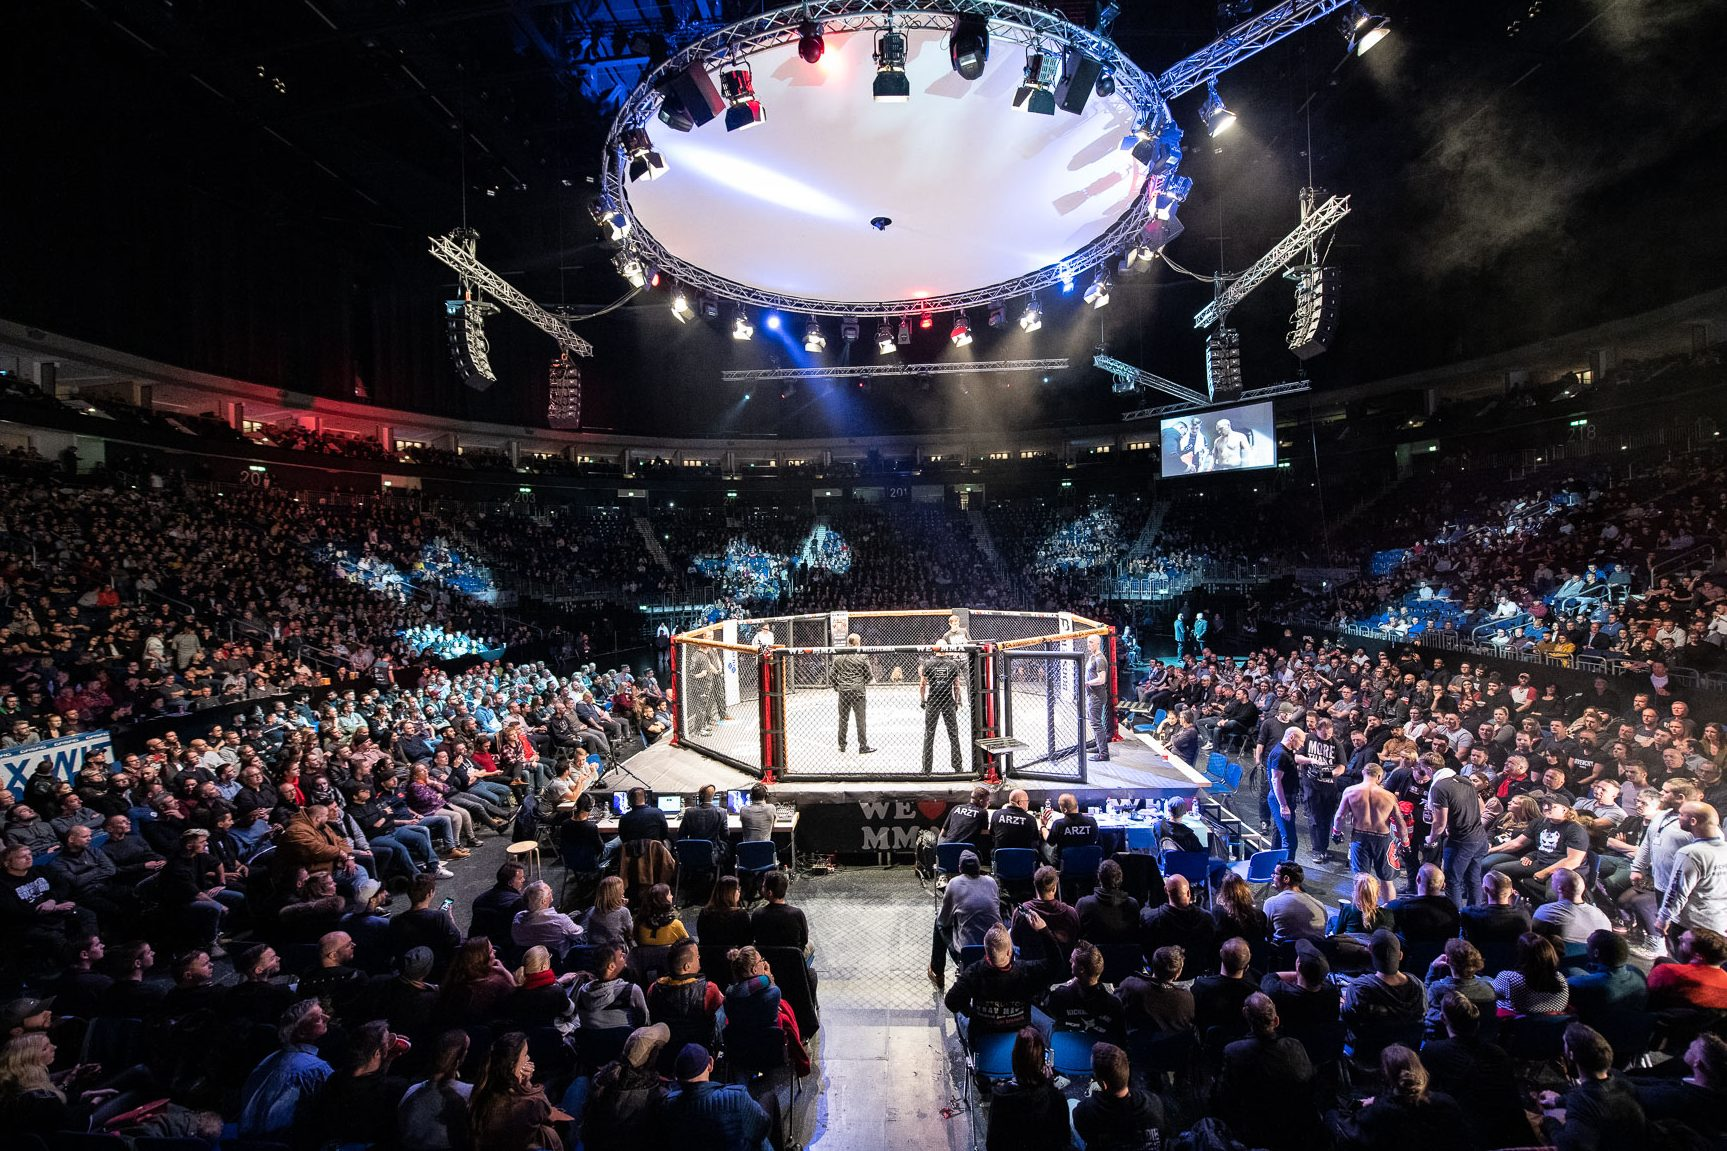 Mma Hannover